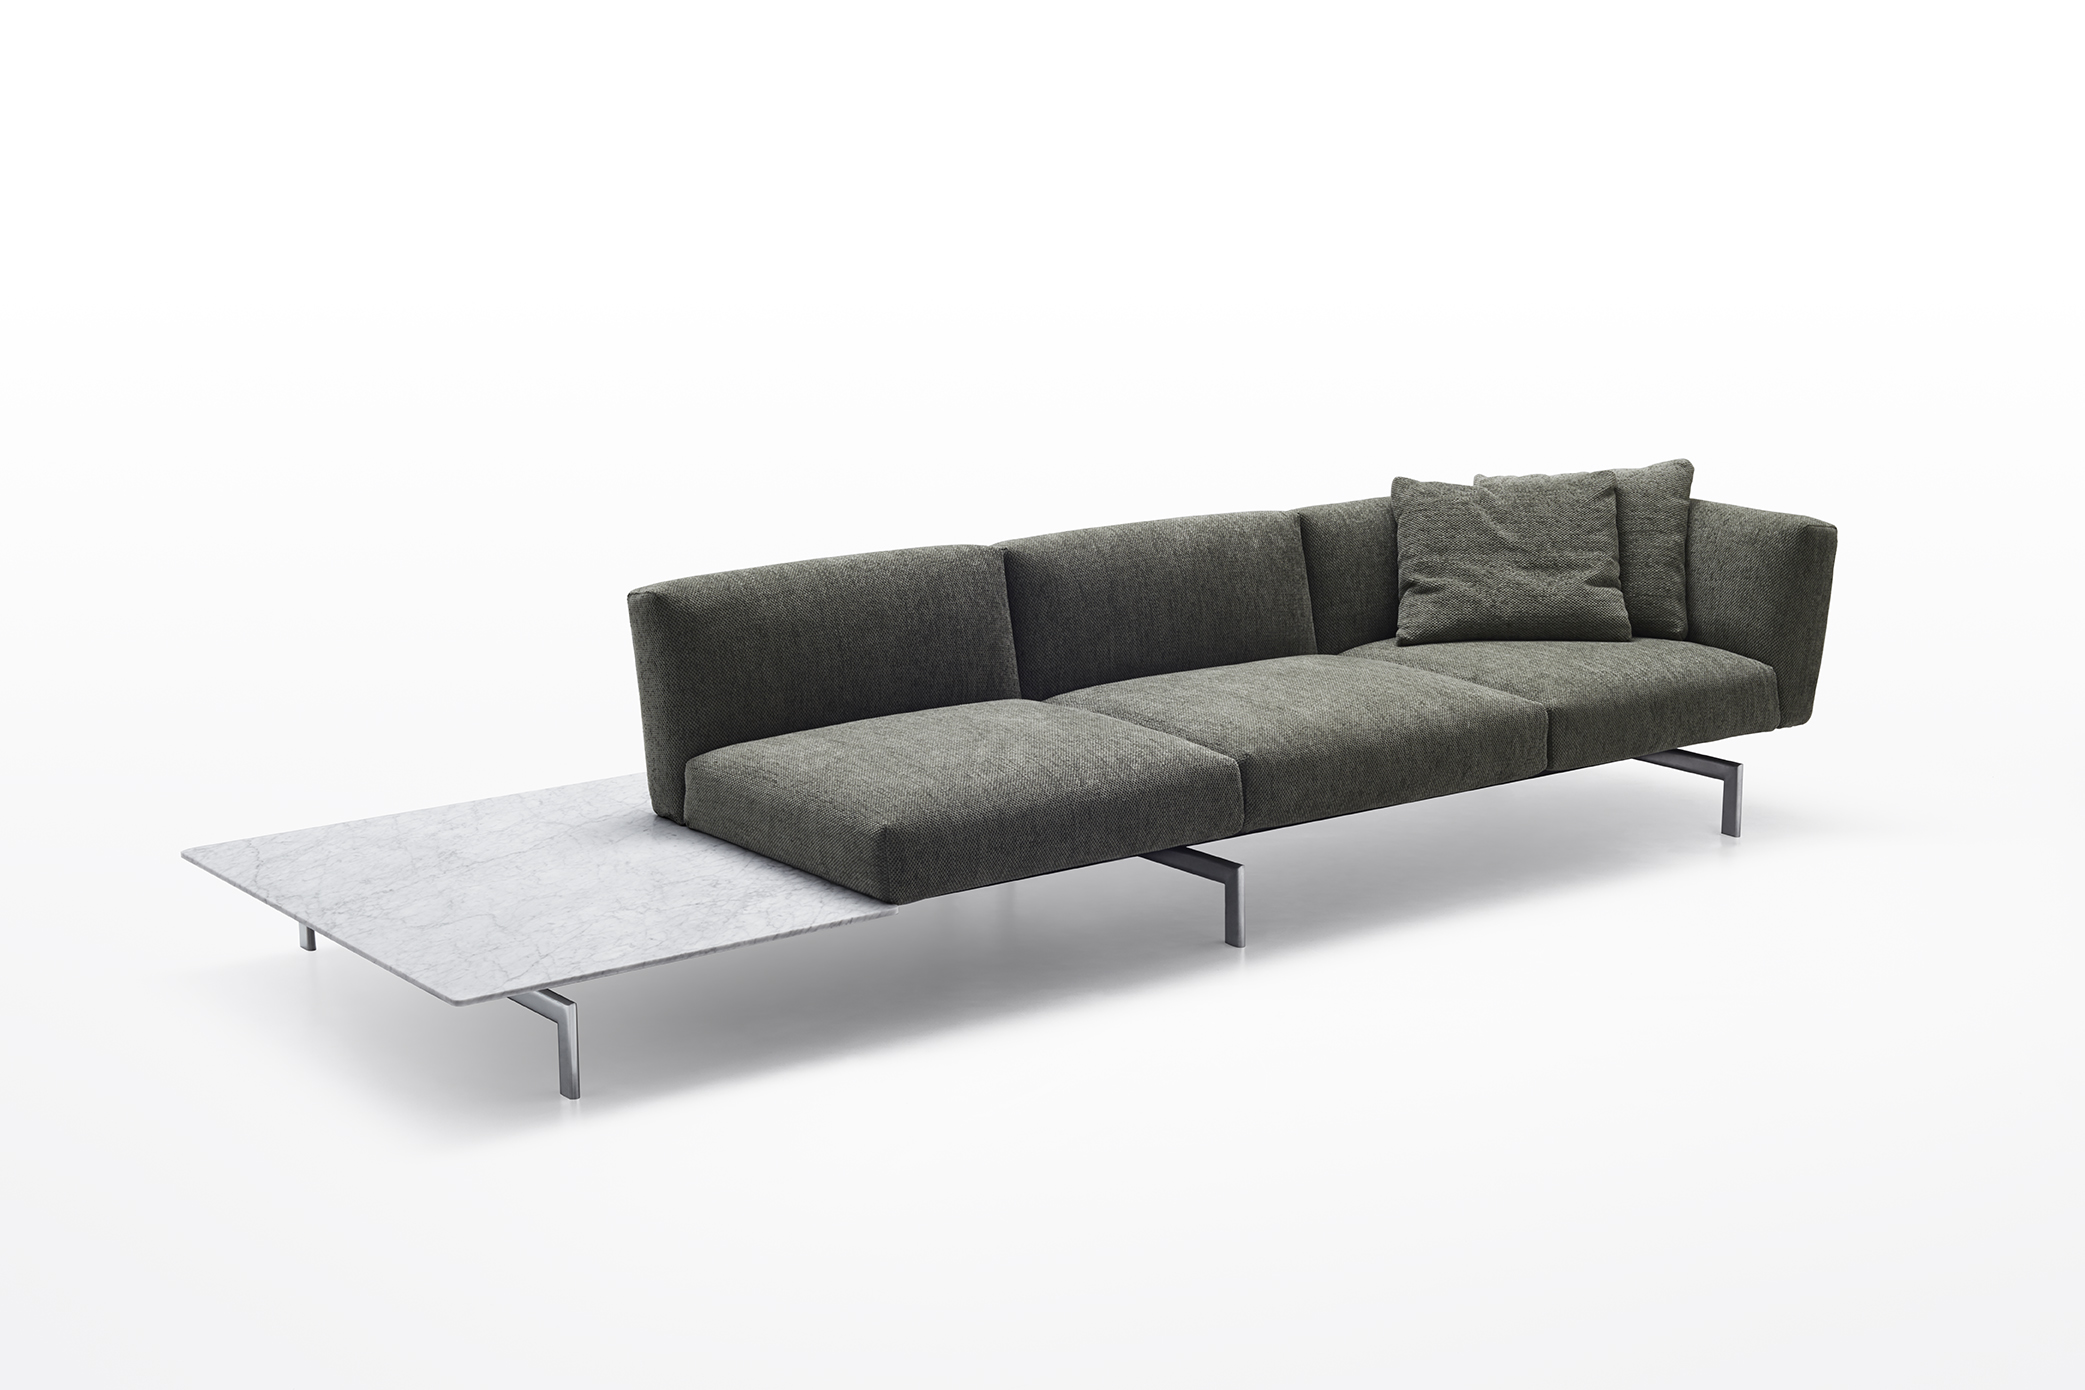 Avio is an elegant, yet relaxed sofa system designed by Piero Lissoni.